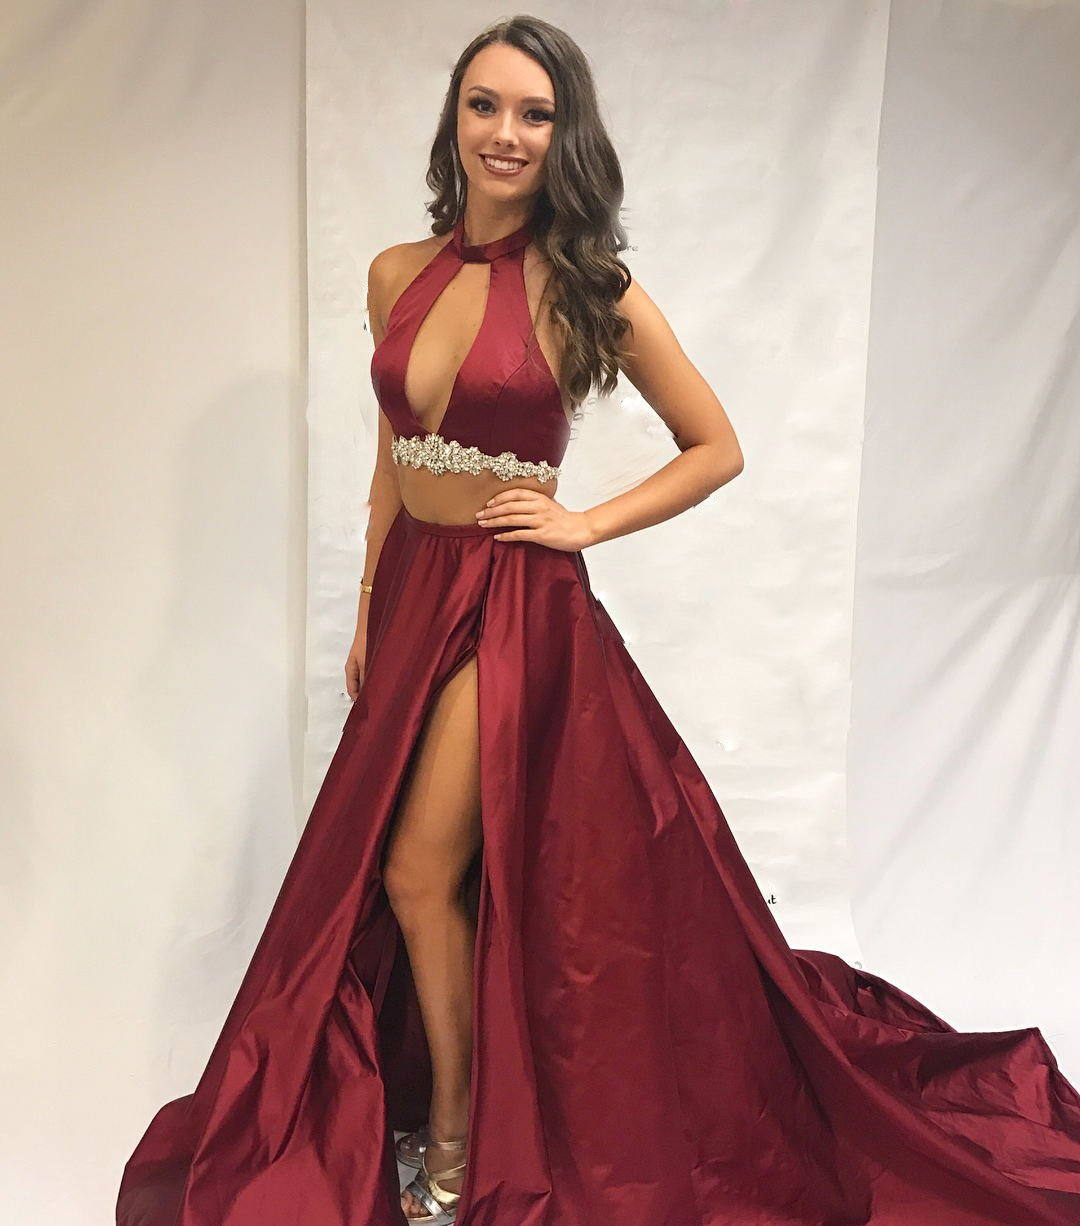 97faf24f807 Two Pieces Prom Dress Sexy Prom Dresses 2 Piece Prom Gown on Storenvy